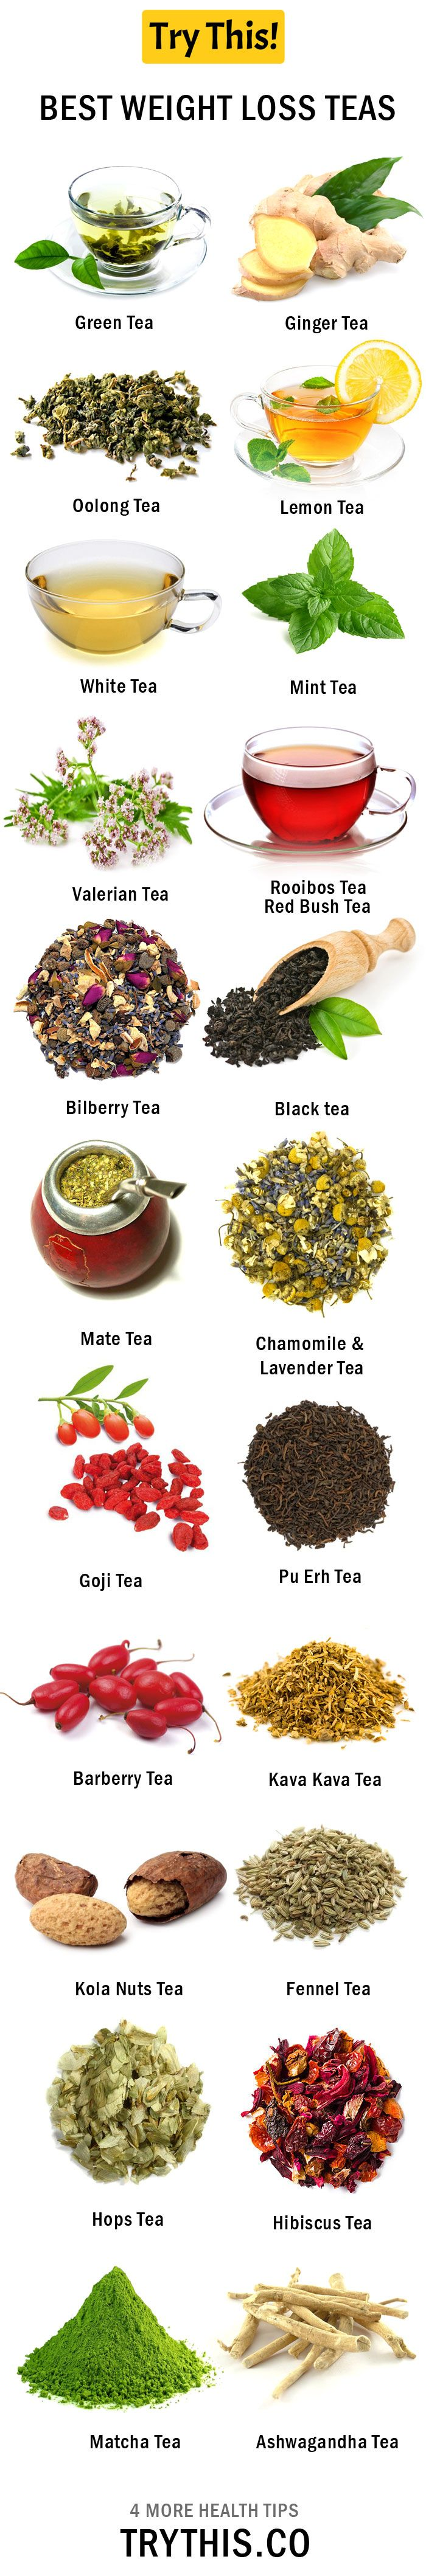 What Are The Best Herbal Teas For Weight Loss